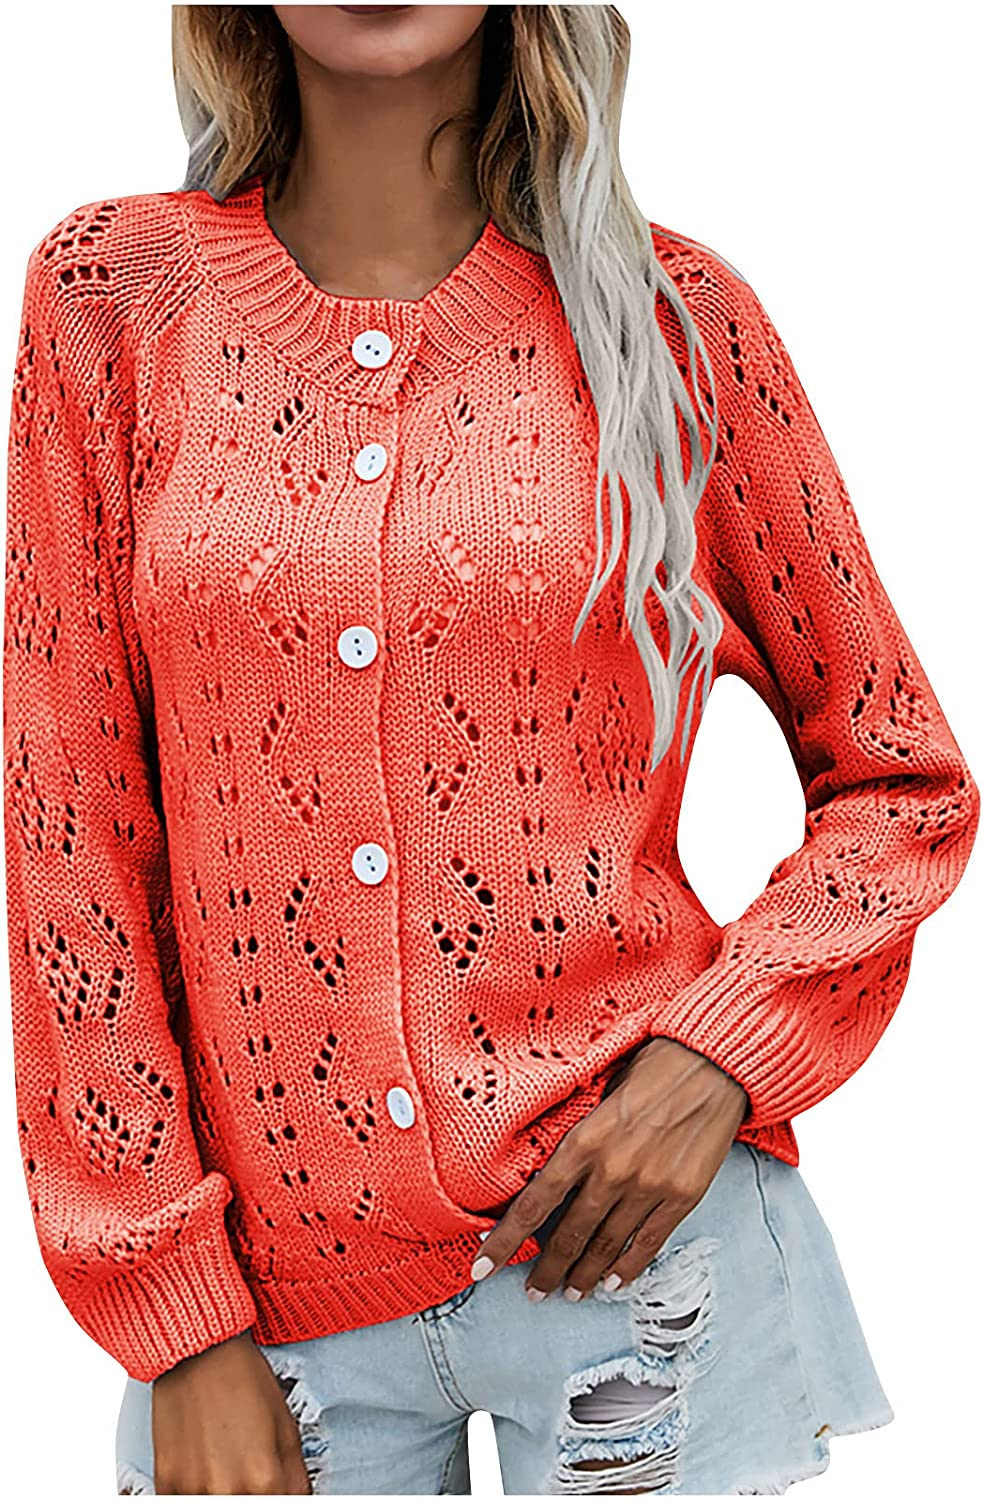 Womens Solid Knit Sweater Tops Long Sleeve Hollow Out Casual Outwear Open Front Cardigan Coat